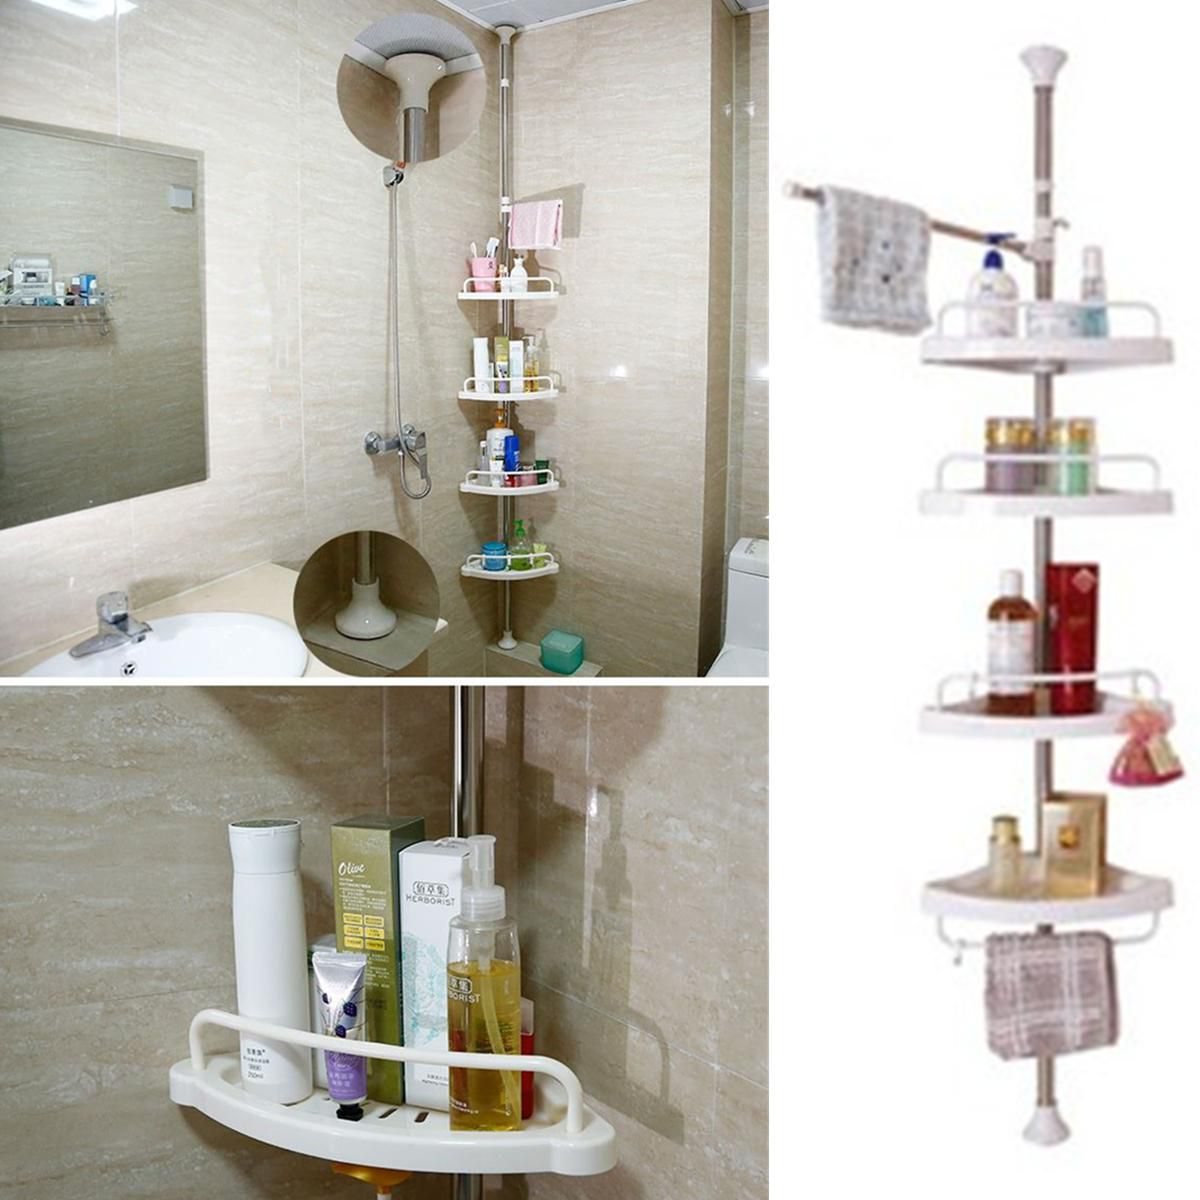 Buy 4 Tier Adjustable Telescopic Bathroom Corner Shower Shelf Rack Caddy Organiser Wall Corner Rack Storage Holder Space Saving Online At Low Price In India Snapdeal